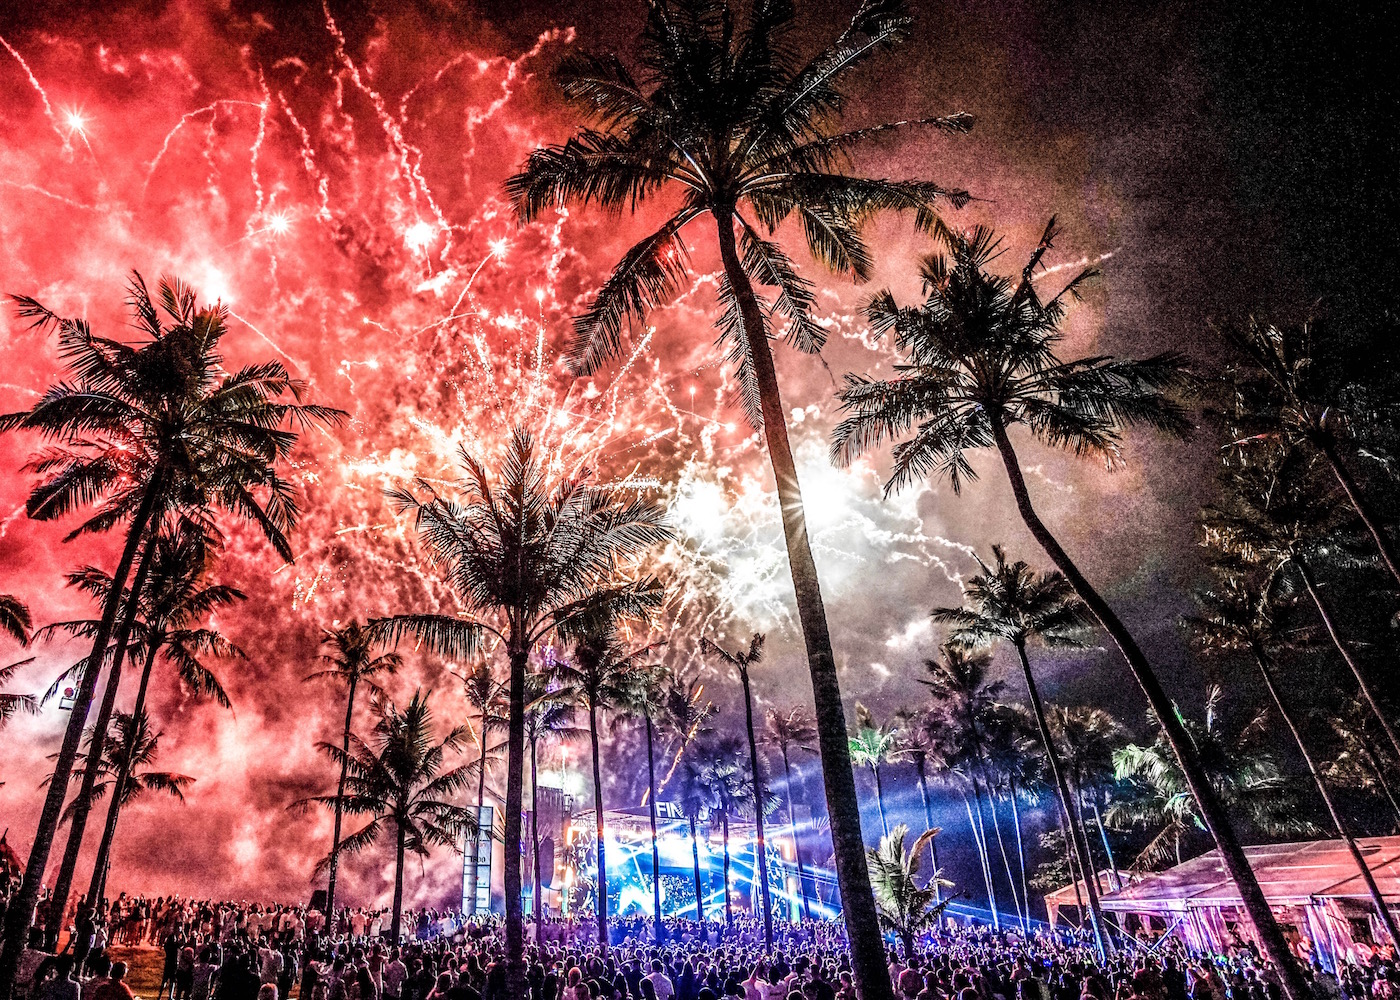 New Year's Eve party in Bali at Finns Beach Club in Canggu, Indonesia